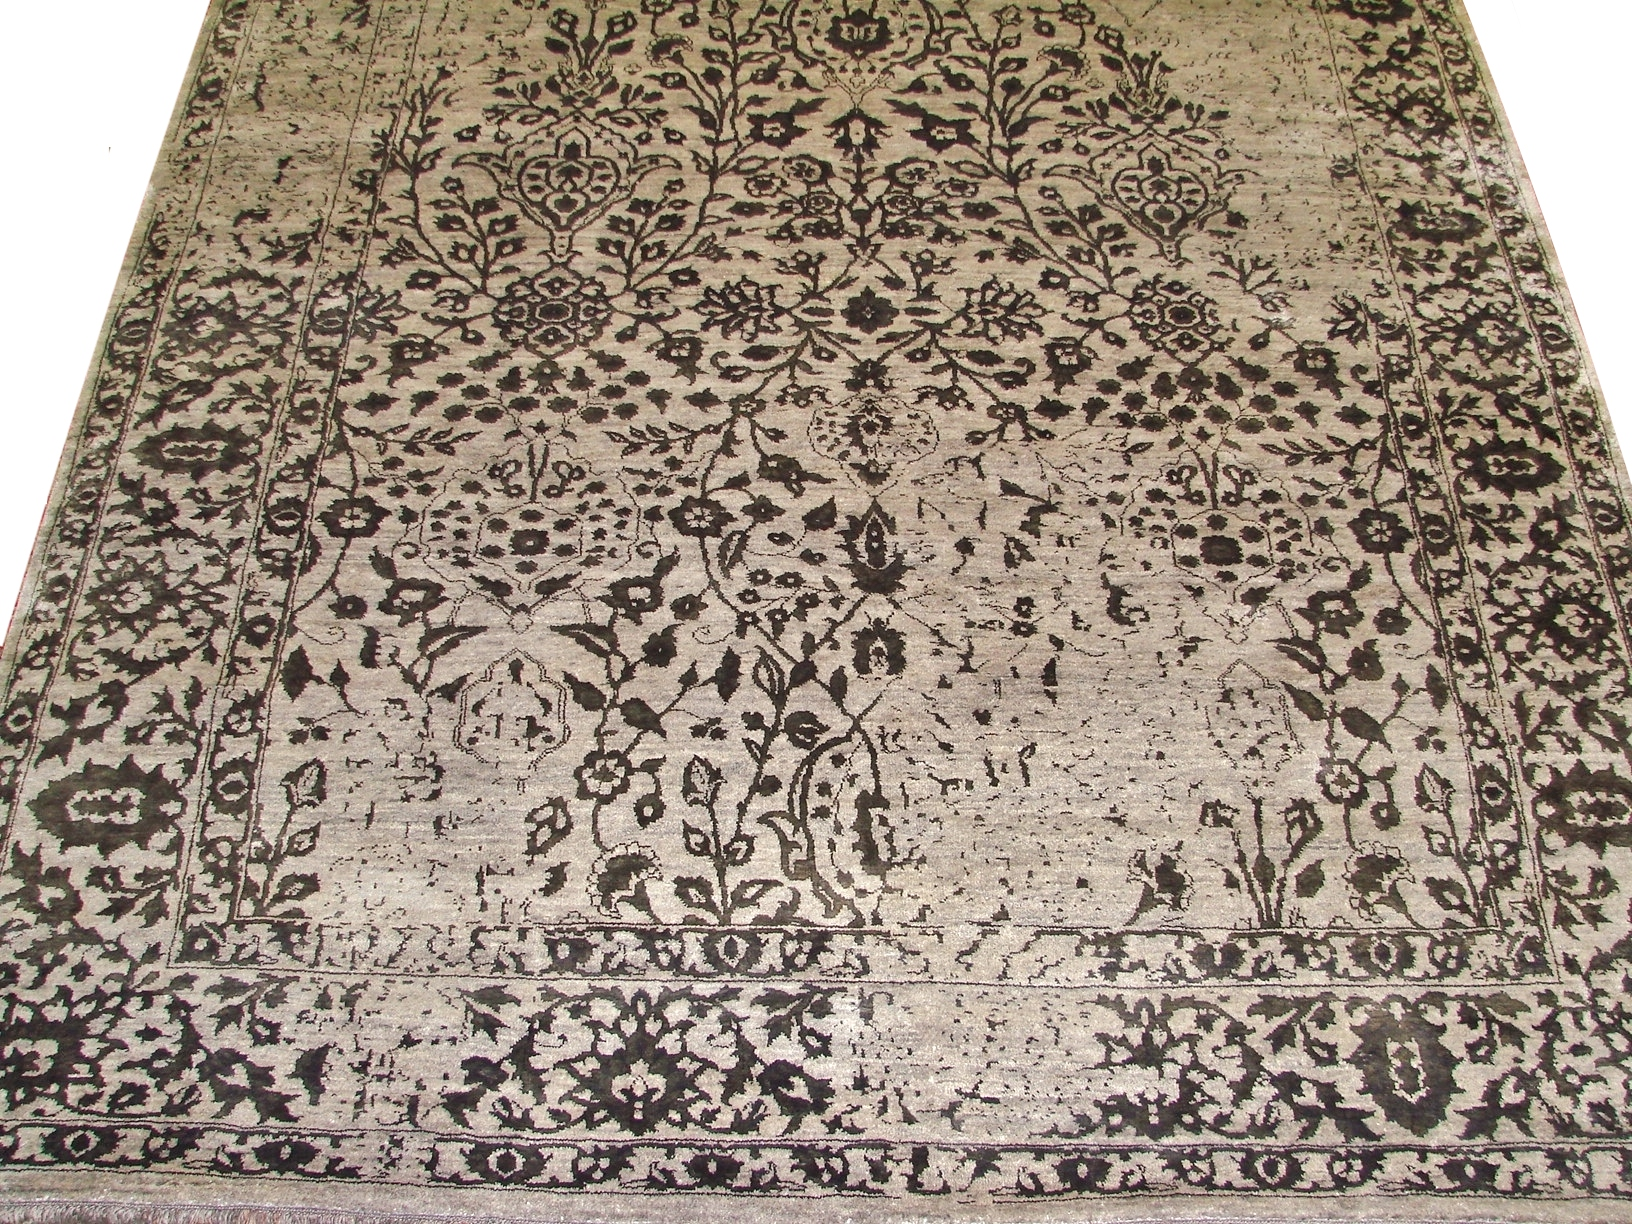 8x10 Contemporary Hand Knotted Wool Area Rug - MR17222